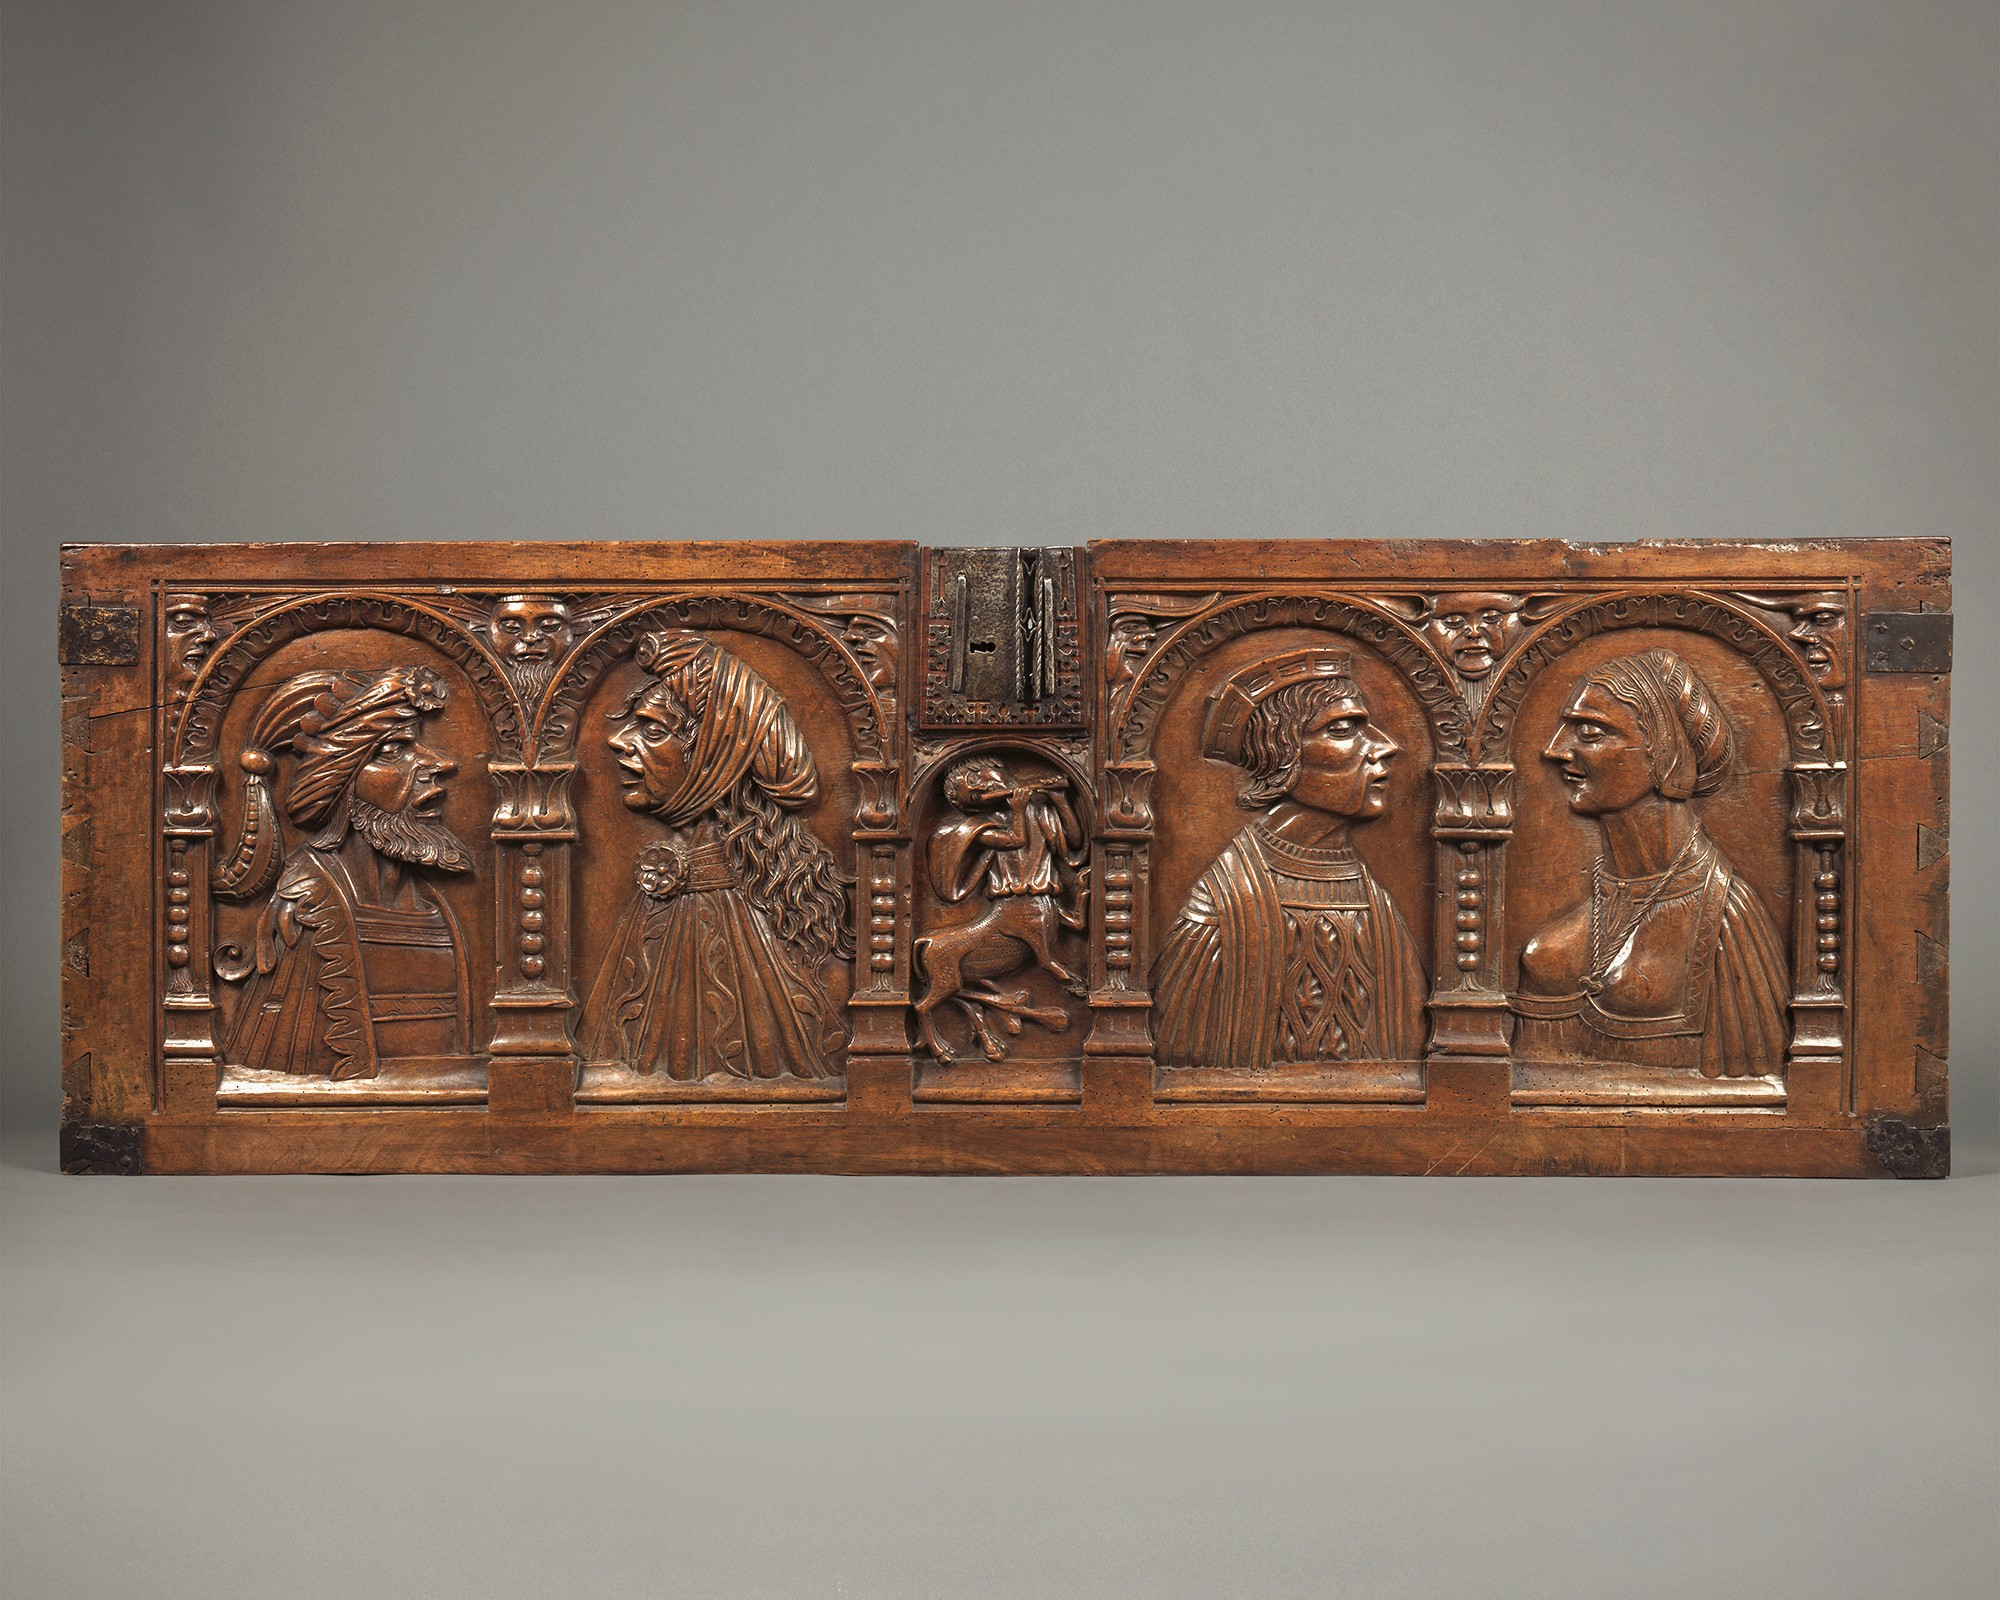 Marriage Chest Panel with Couple, France, early 16th century